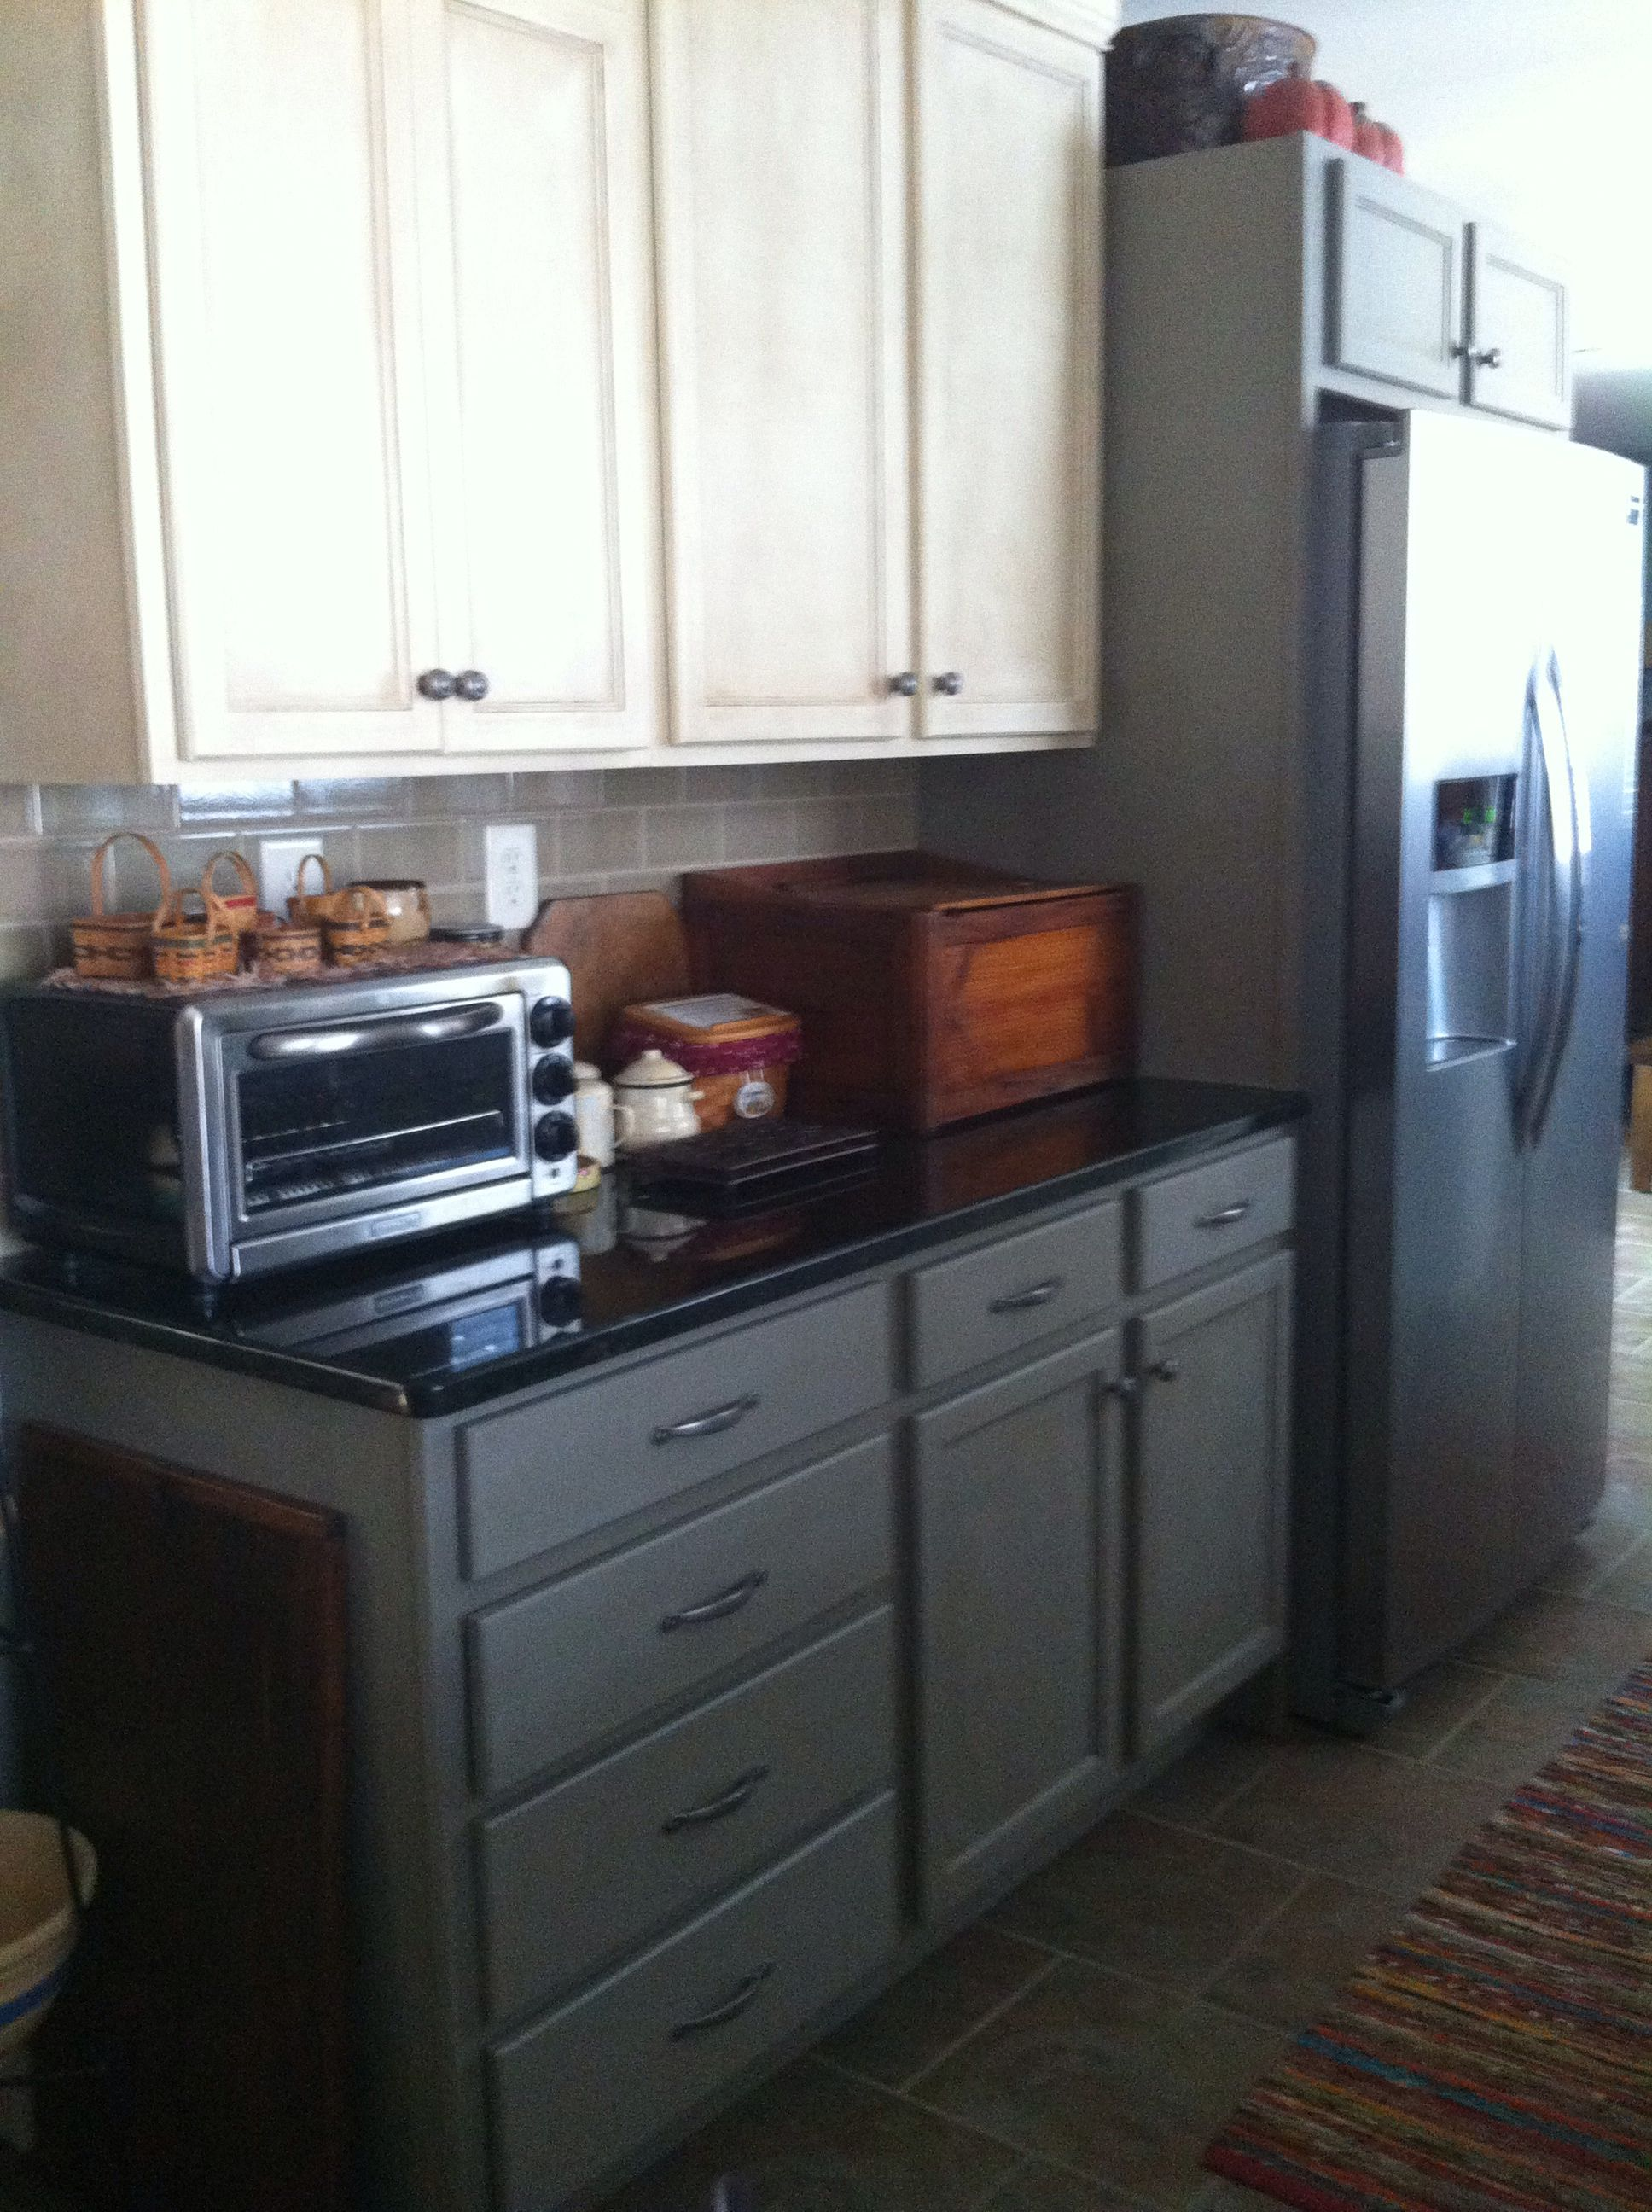 Kitchen Cabinets In Ascp French Linen And Old White Kitchen Cabinets Kitchen Home Decor